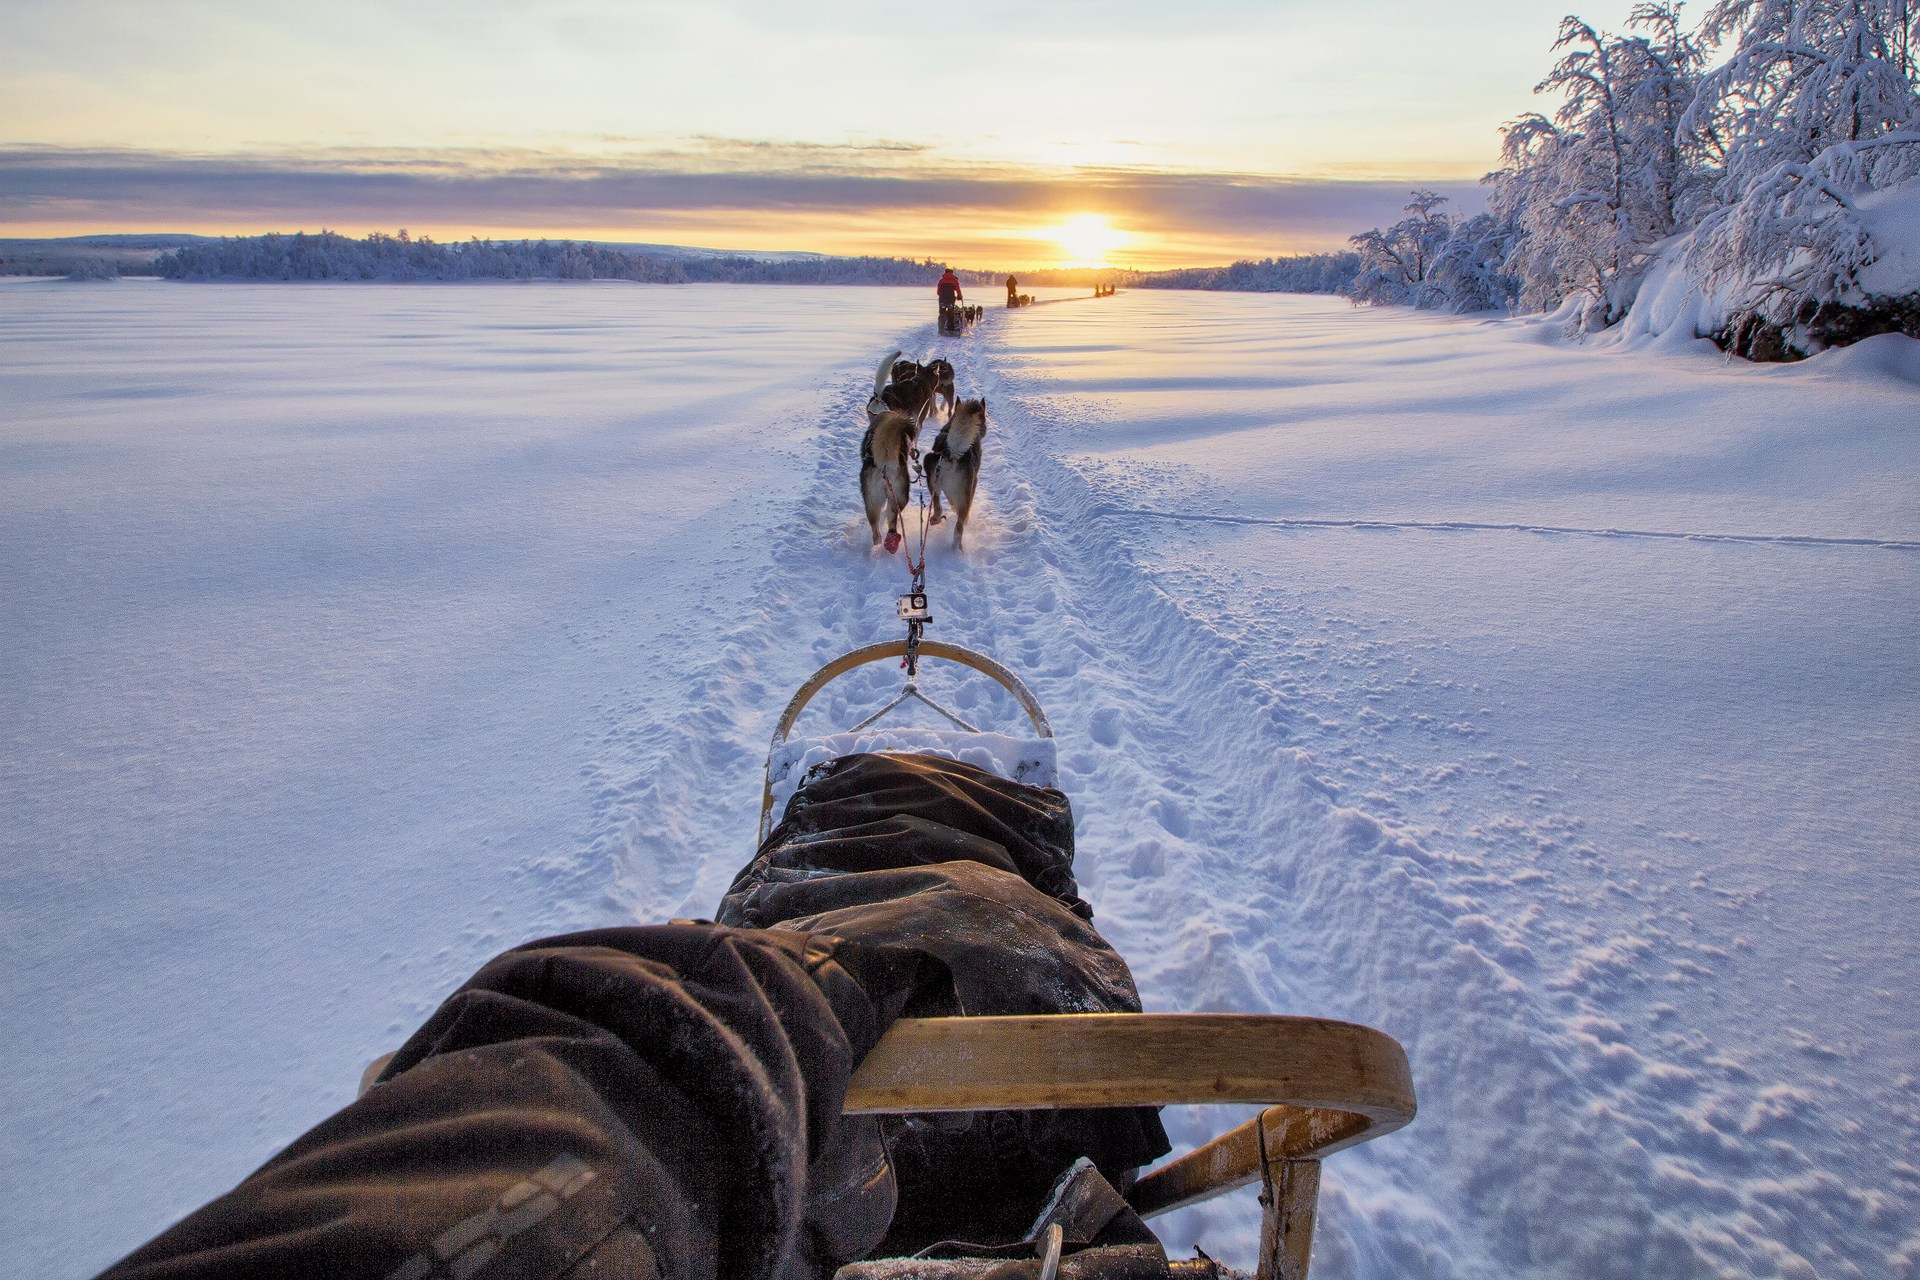 Sledding, mushing, finland, husky, husky tour, snow, winter, lapland, to the sun, cold, adventure tour, abenteuer tour, sled, schlitten